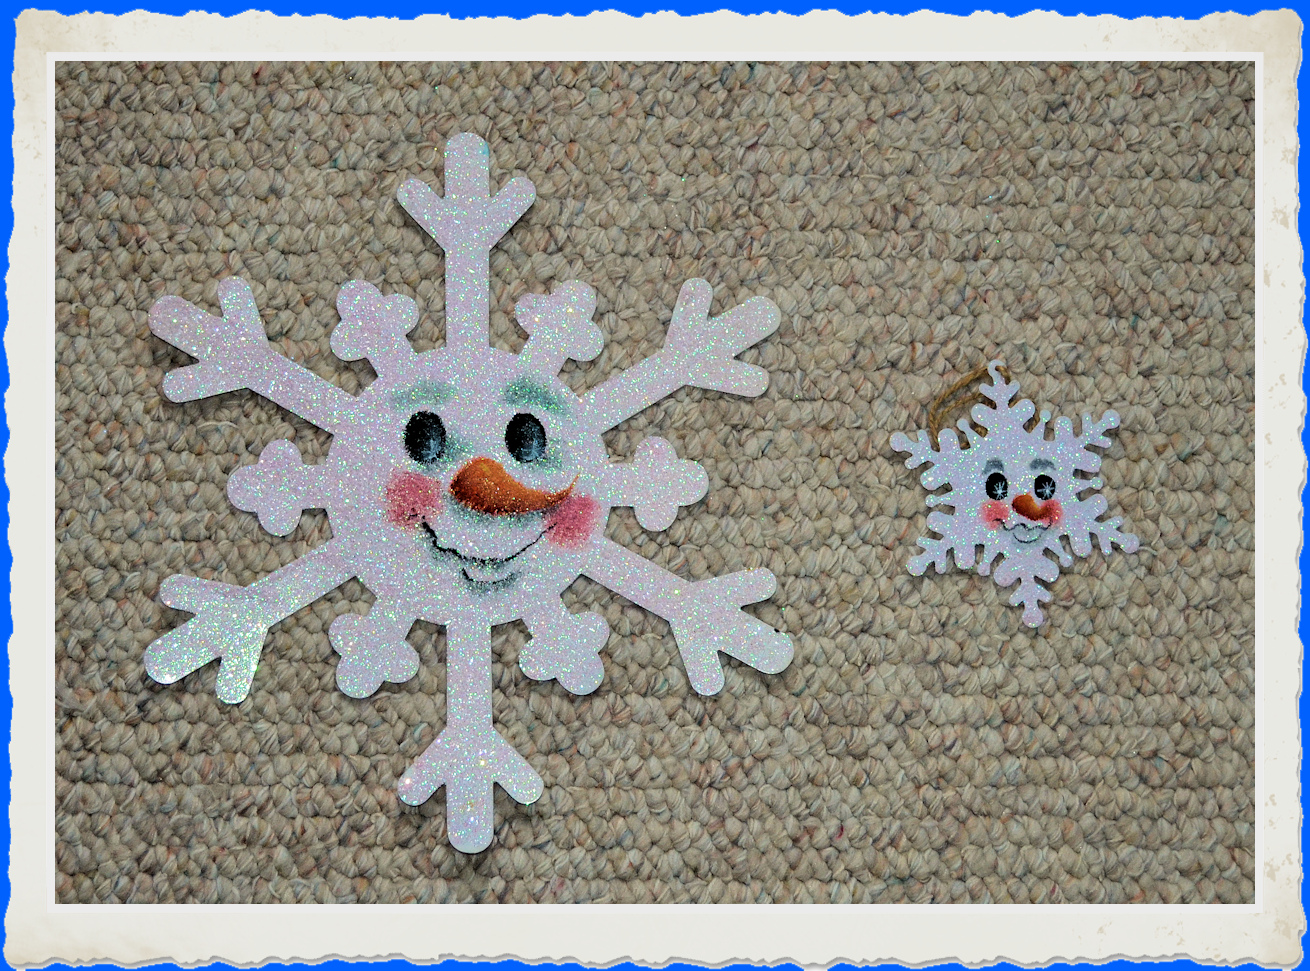 or-snowflake-ornments-painted-13xxx-boaarderframed.jpg